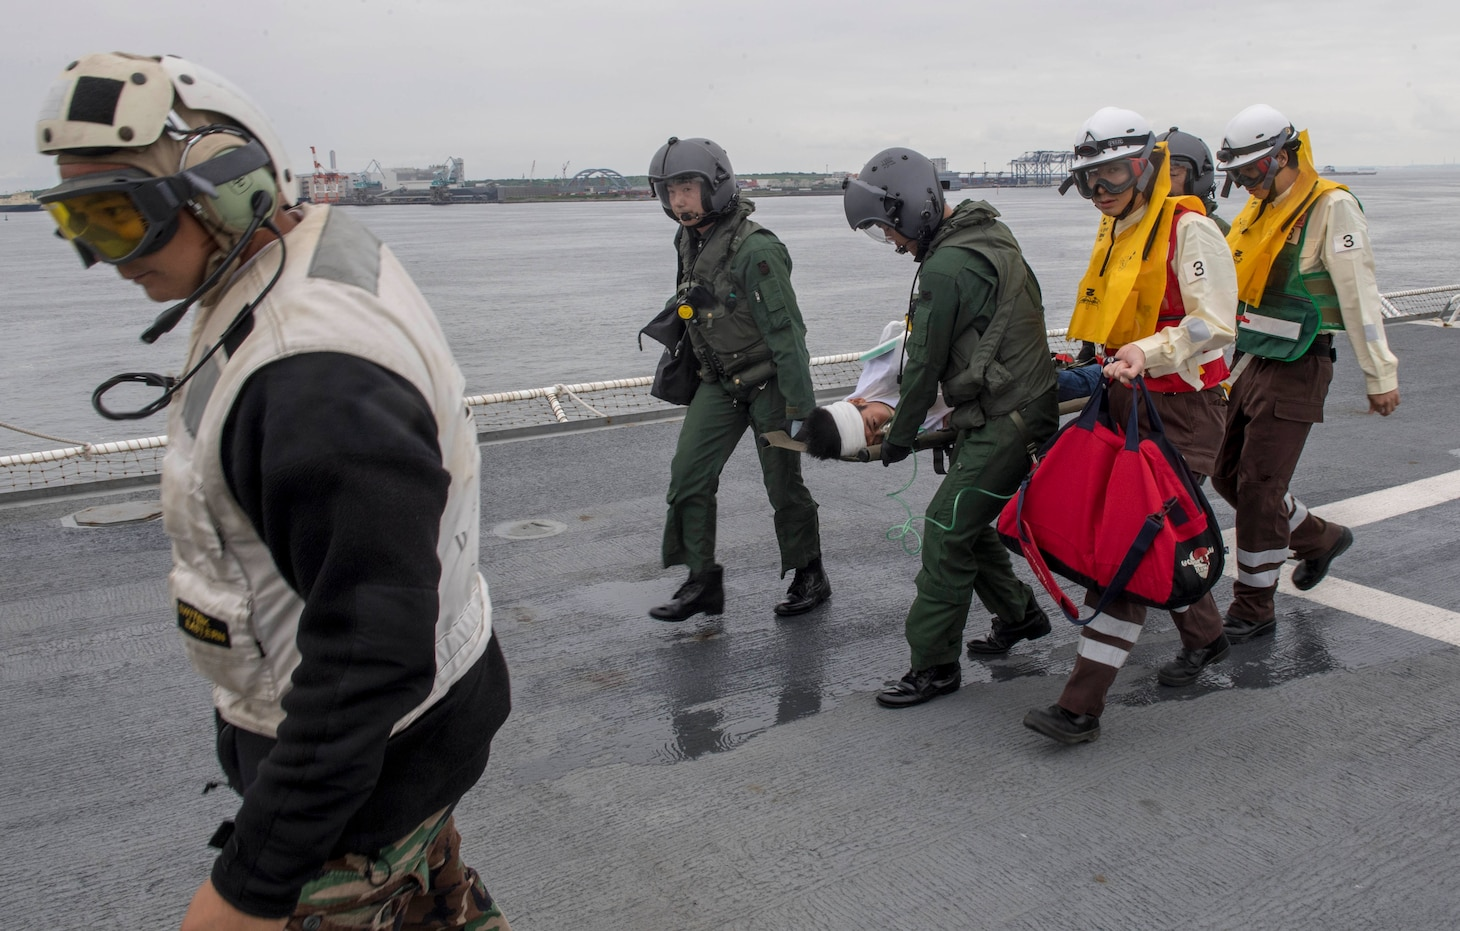 Sailors assigned to Military Sealift Command hospital ship USNS Mercy (T-AH 19) for Pacific Partnership 2018 (PP18) and Japanese Maritime Self-Defense Force (JMSDF) transfer a mock patient from an SH-60K Sea Hawk helicopter attached to the JMSDF during a bilateral medical training team drill between Mercy and JMSDF personnel. USNS Mercy is making port visits to Yokosuka and Tokyo to promote relationships between U.S. Navy Sailors and Japanese citizens through cultural exchange and bilateral training.